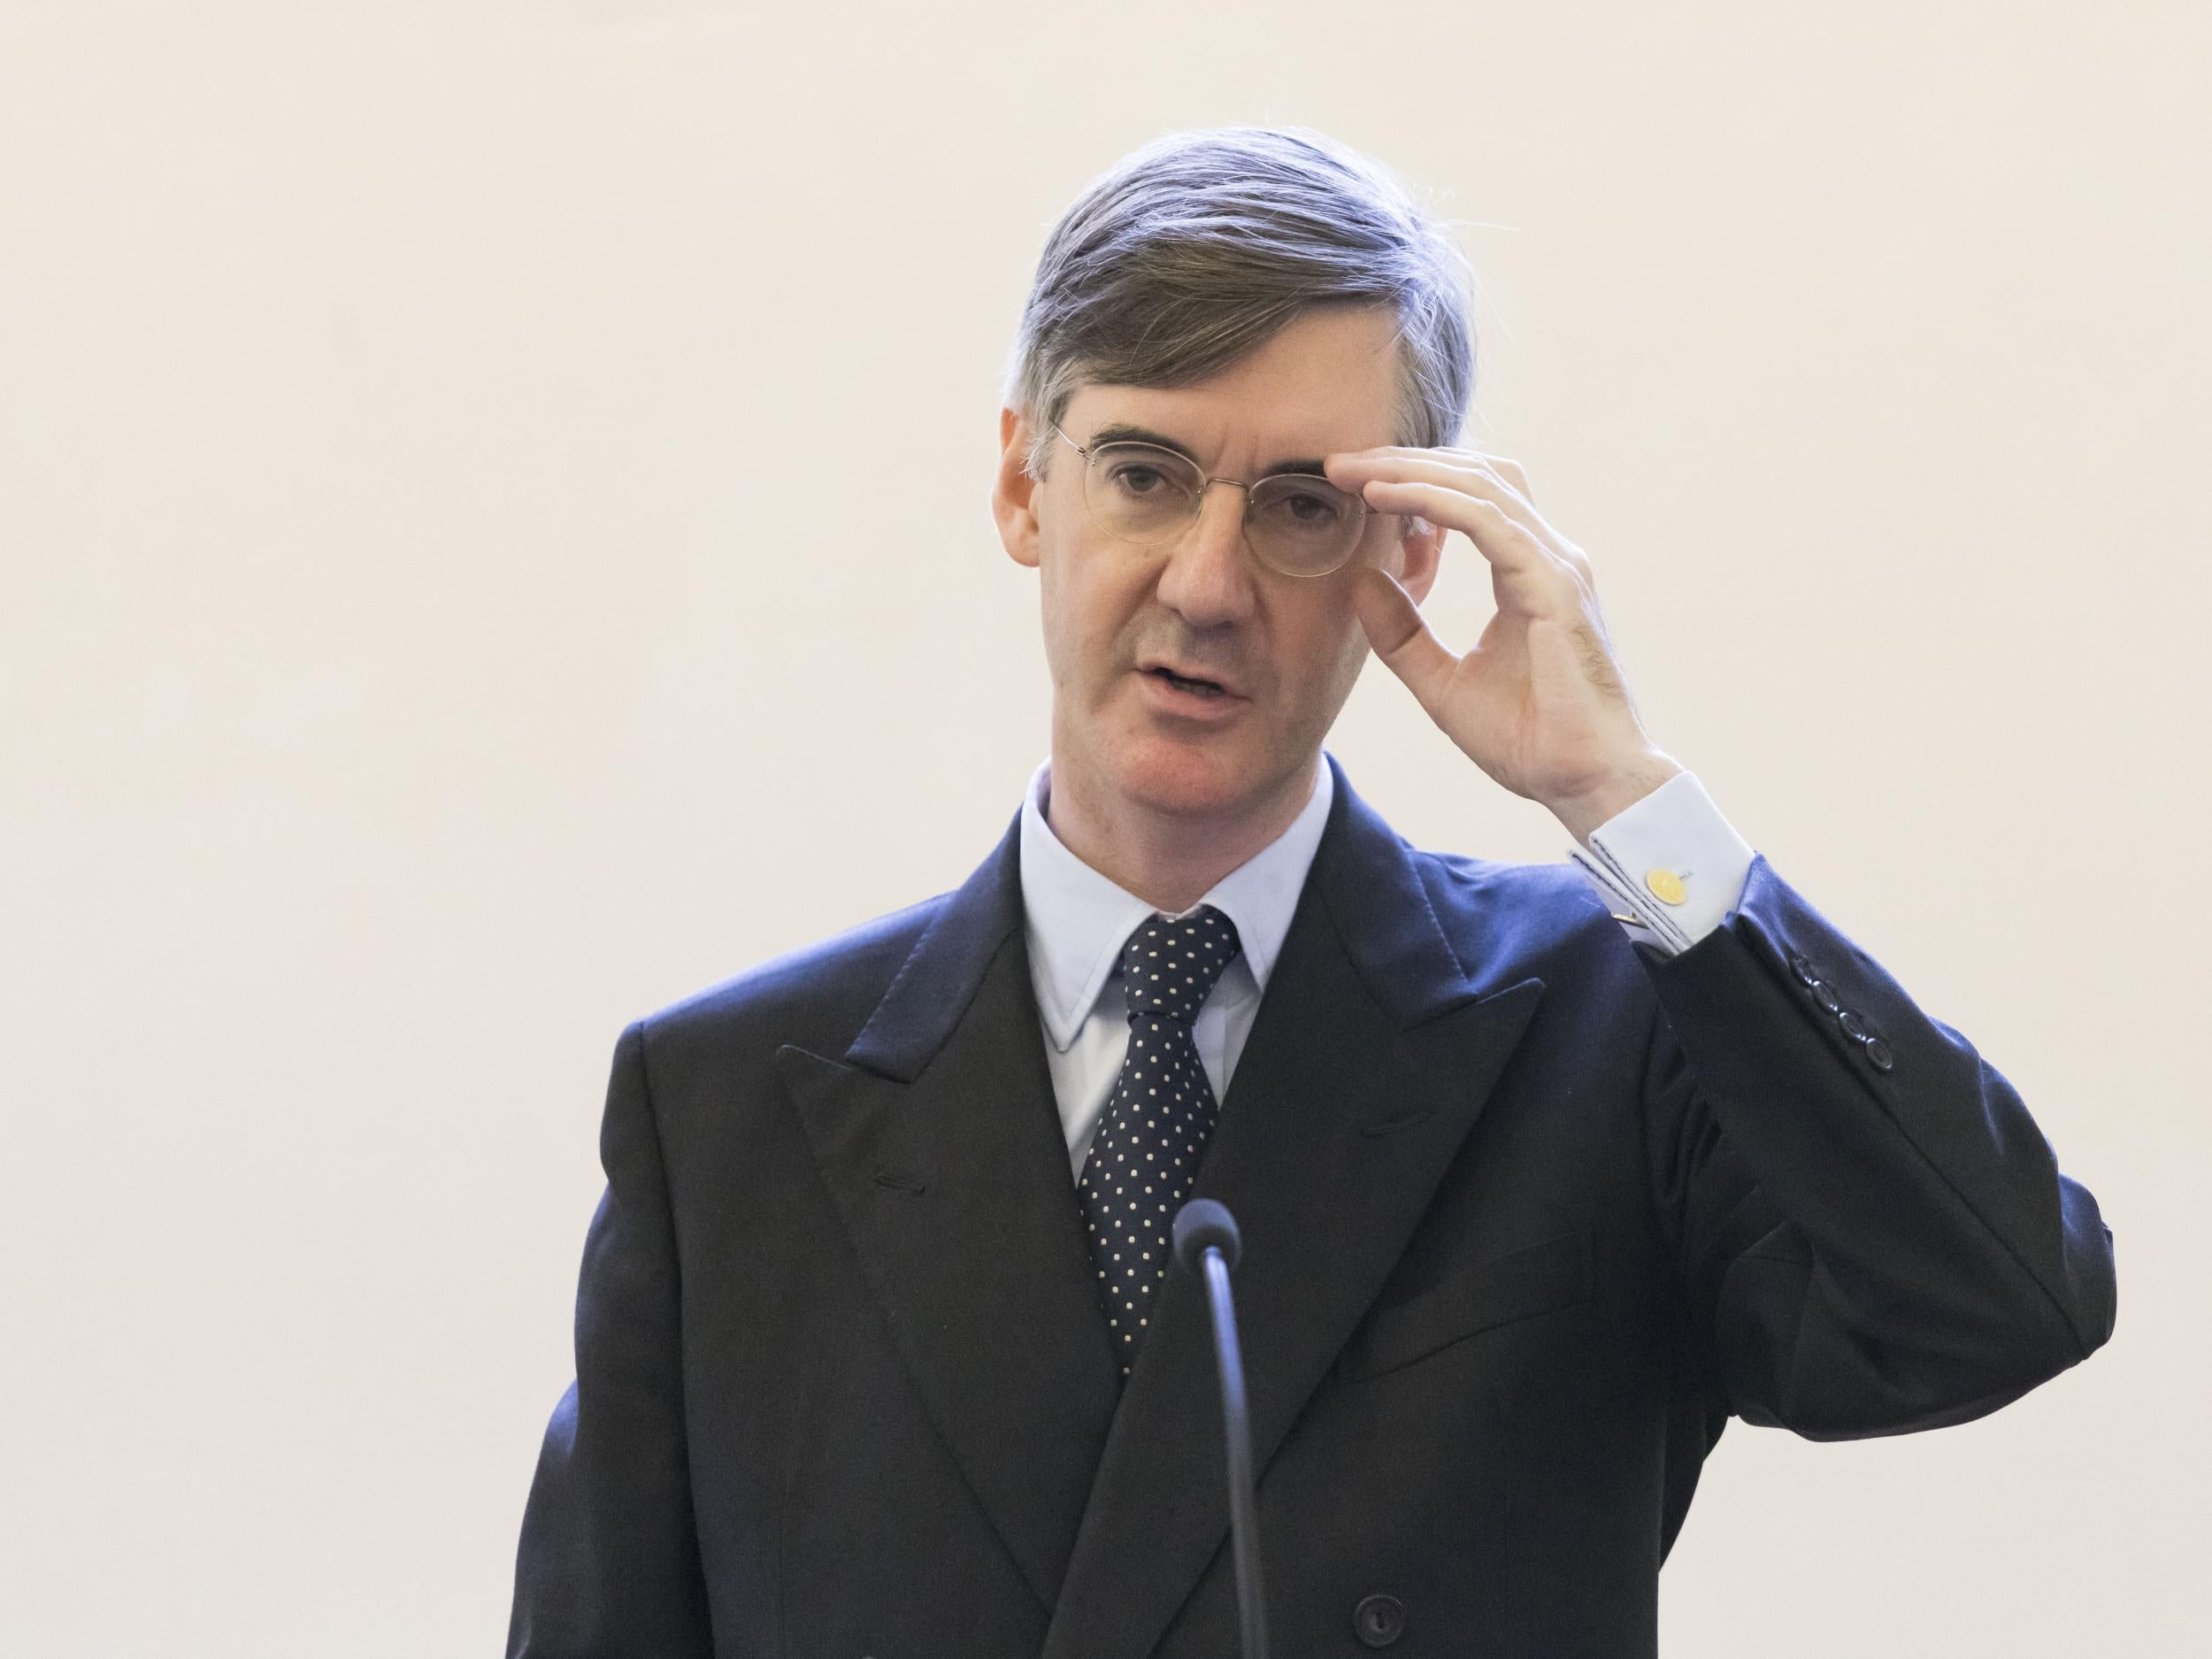 Jacob Rees-Mogg 'met with Steve Bannon to discuss US-UK politics'